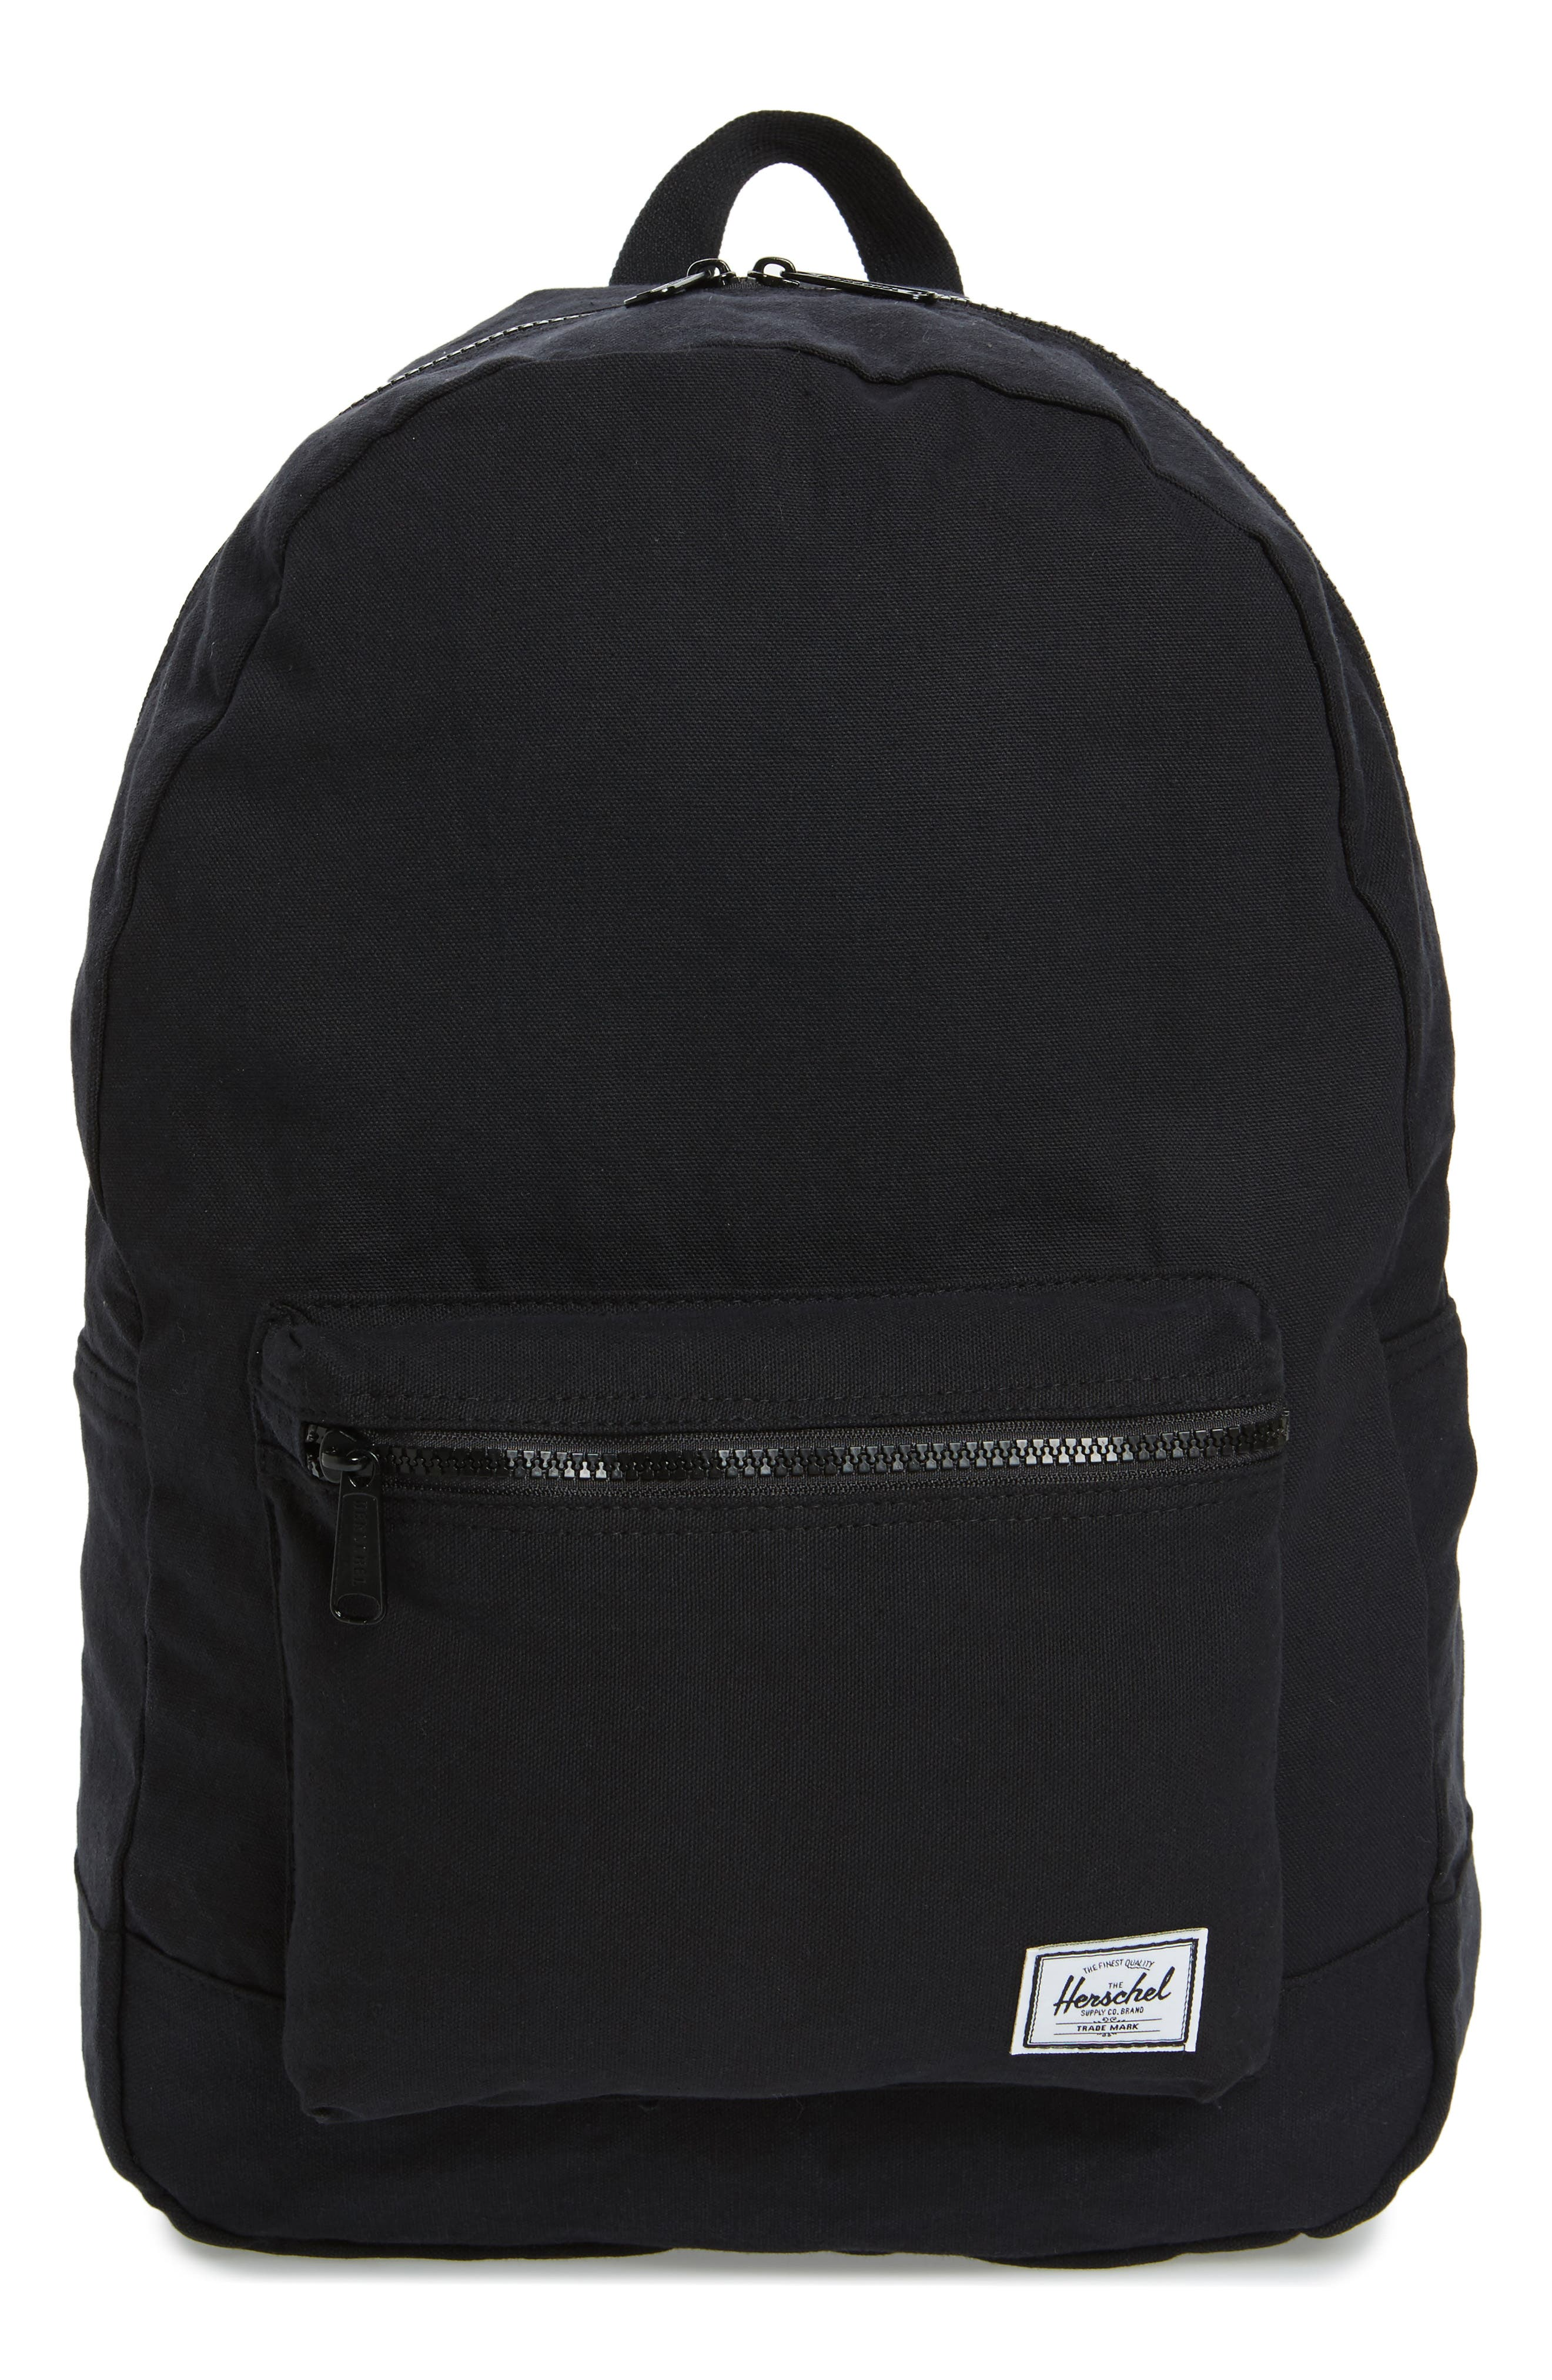 Cotton Casuals Daypack Backpack,                             Main thumbnail 4, color,